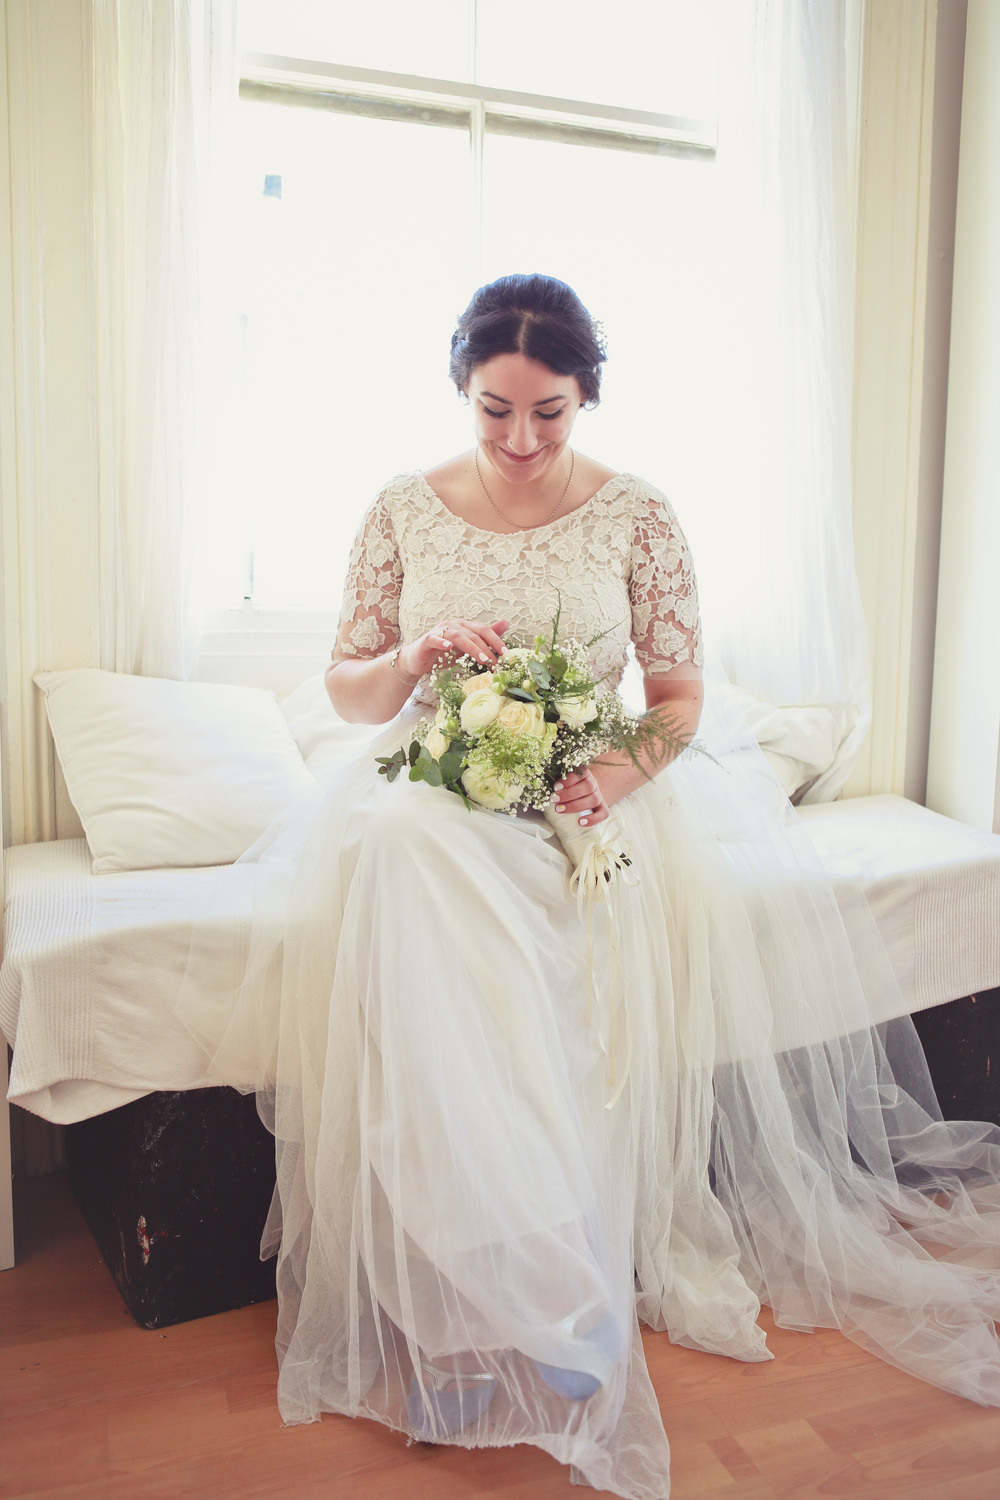 Bespoke Lace Tulle Wedding Dress With Blue Zara Shoes For An